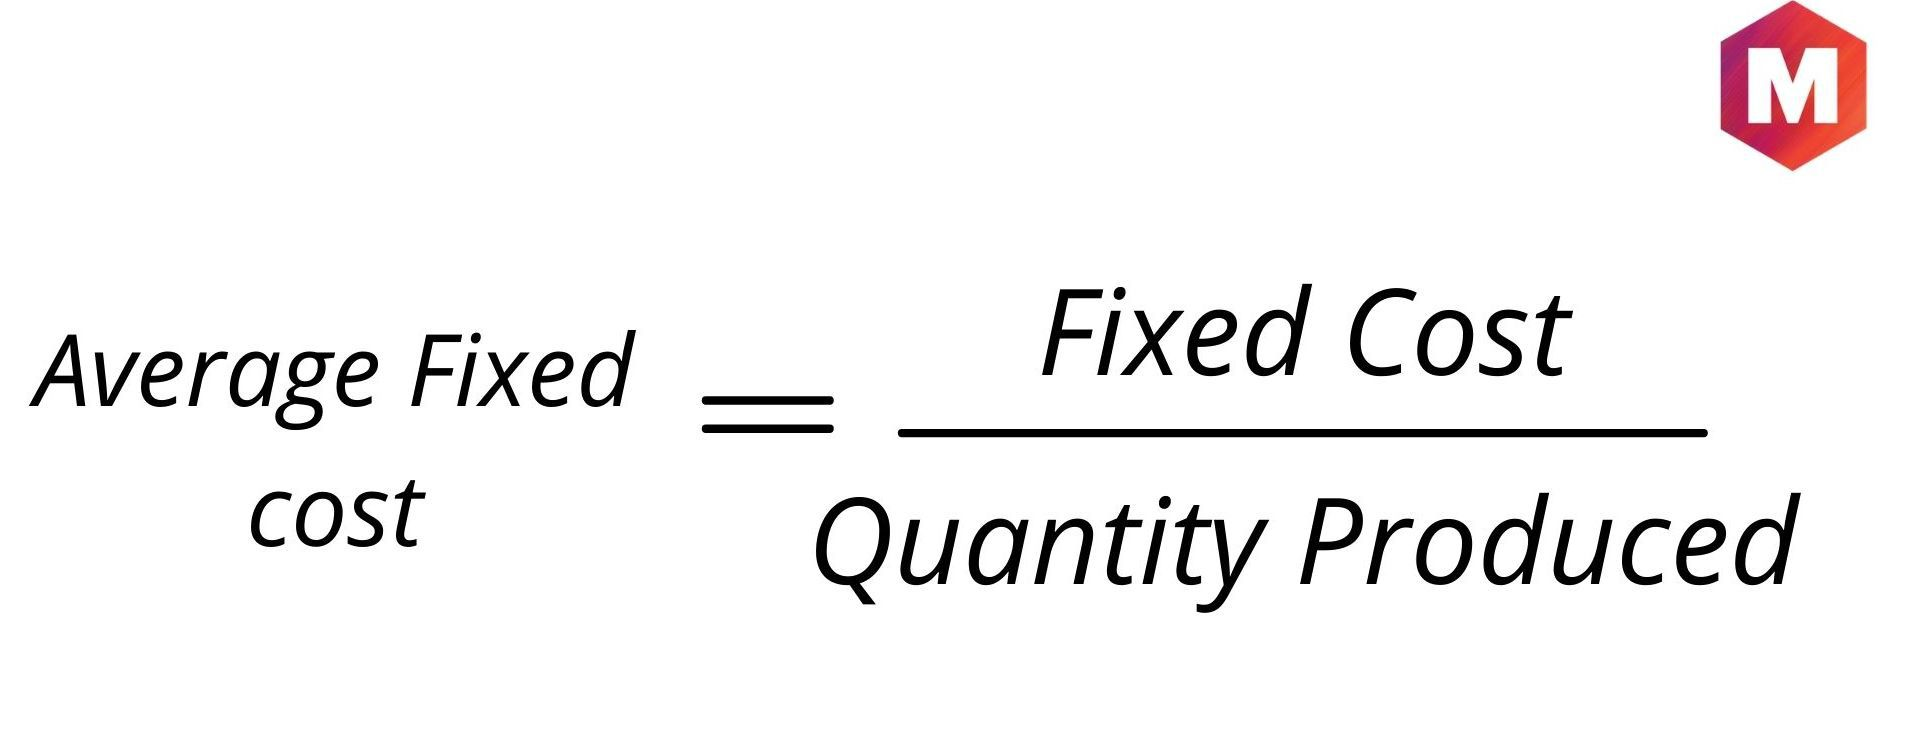 Calculation of Average Fixed Cost